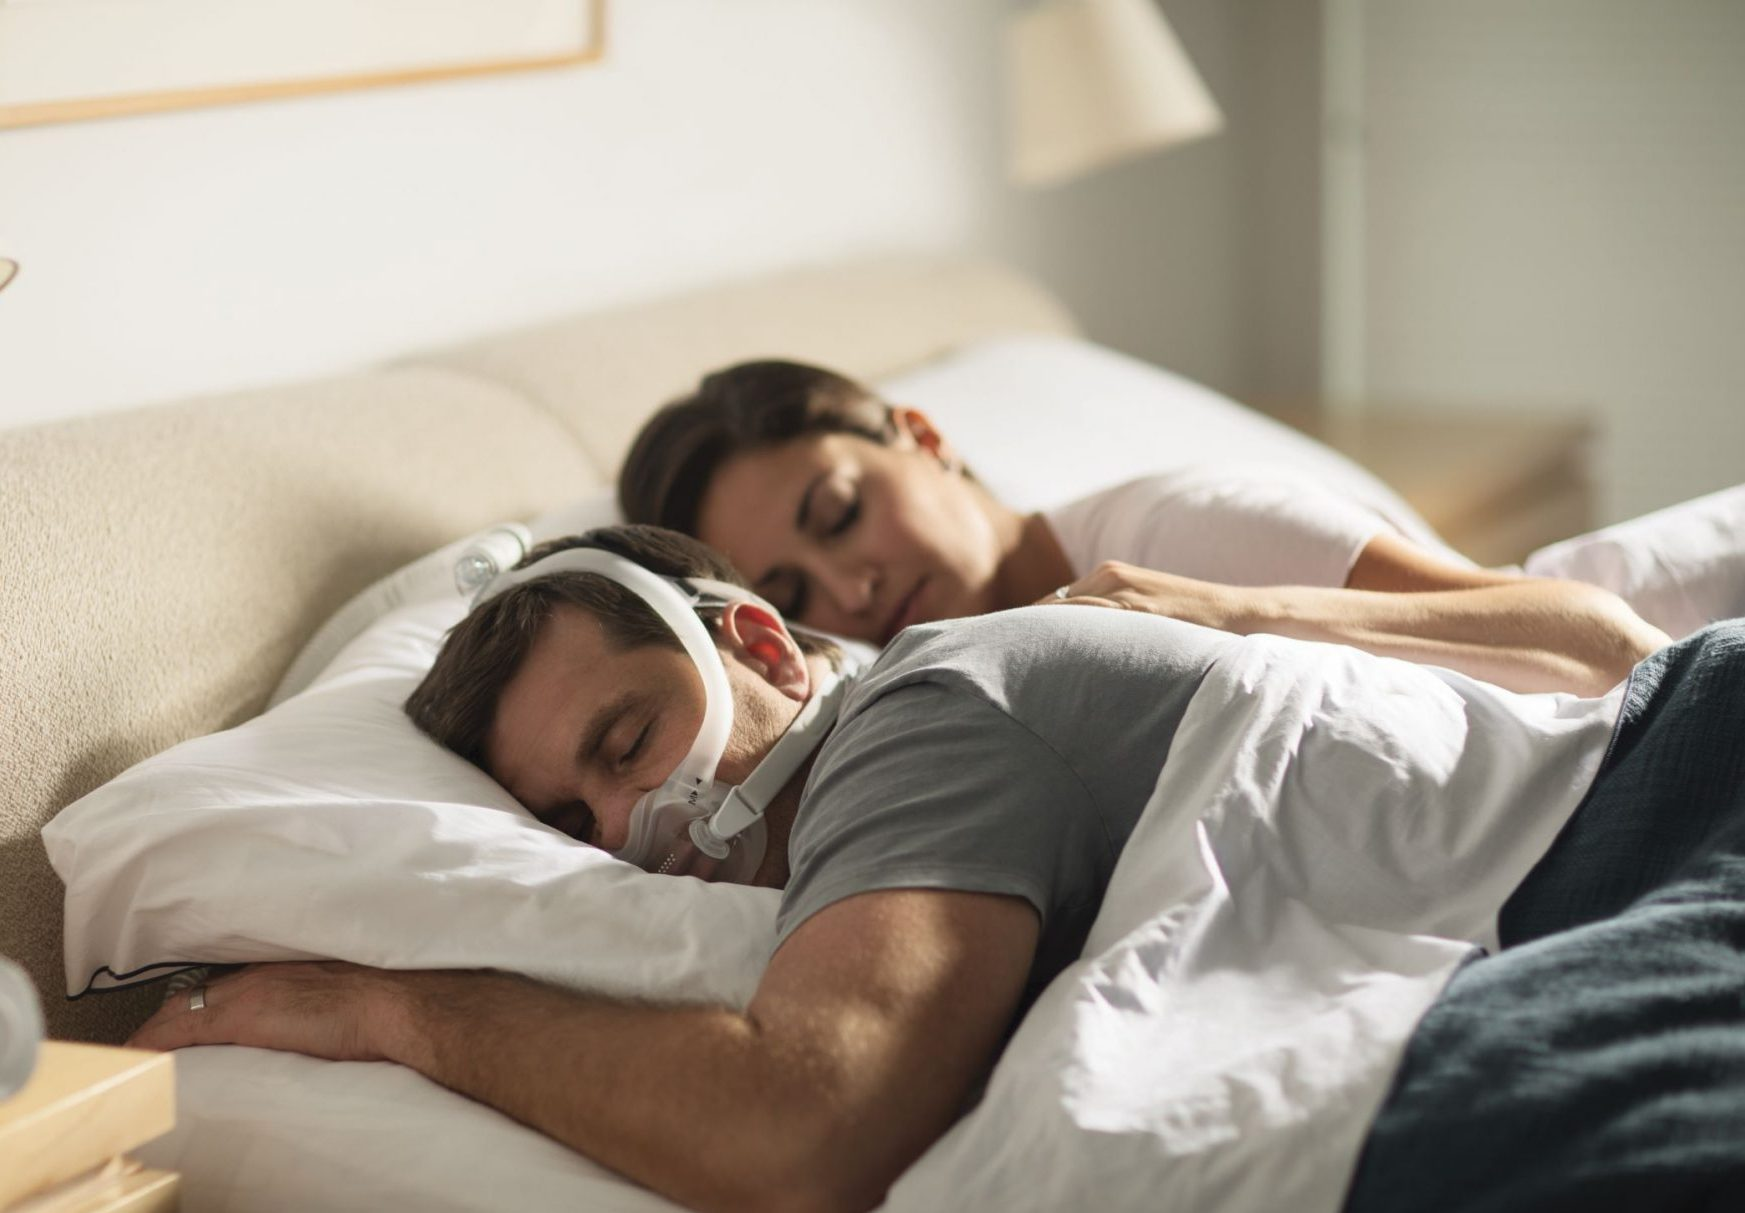 Couple Sleeping Together With CPAP Machine To Assist With Sleeping